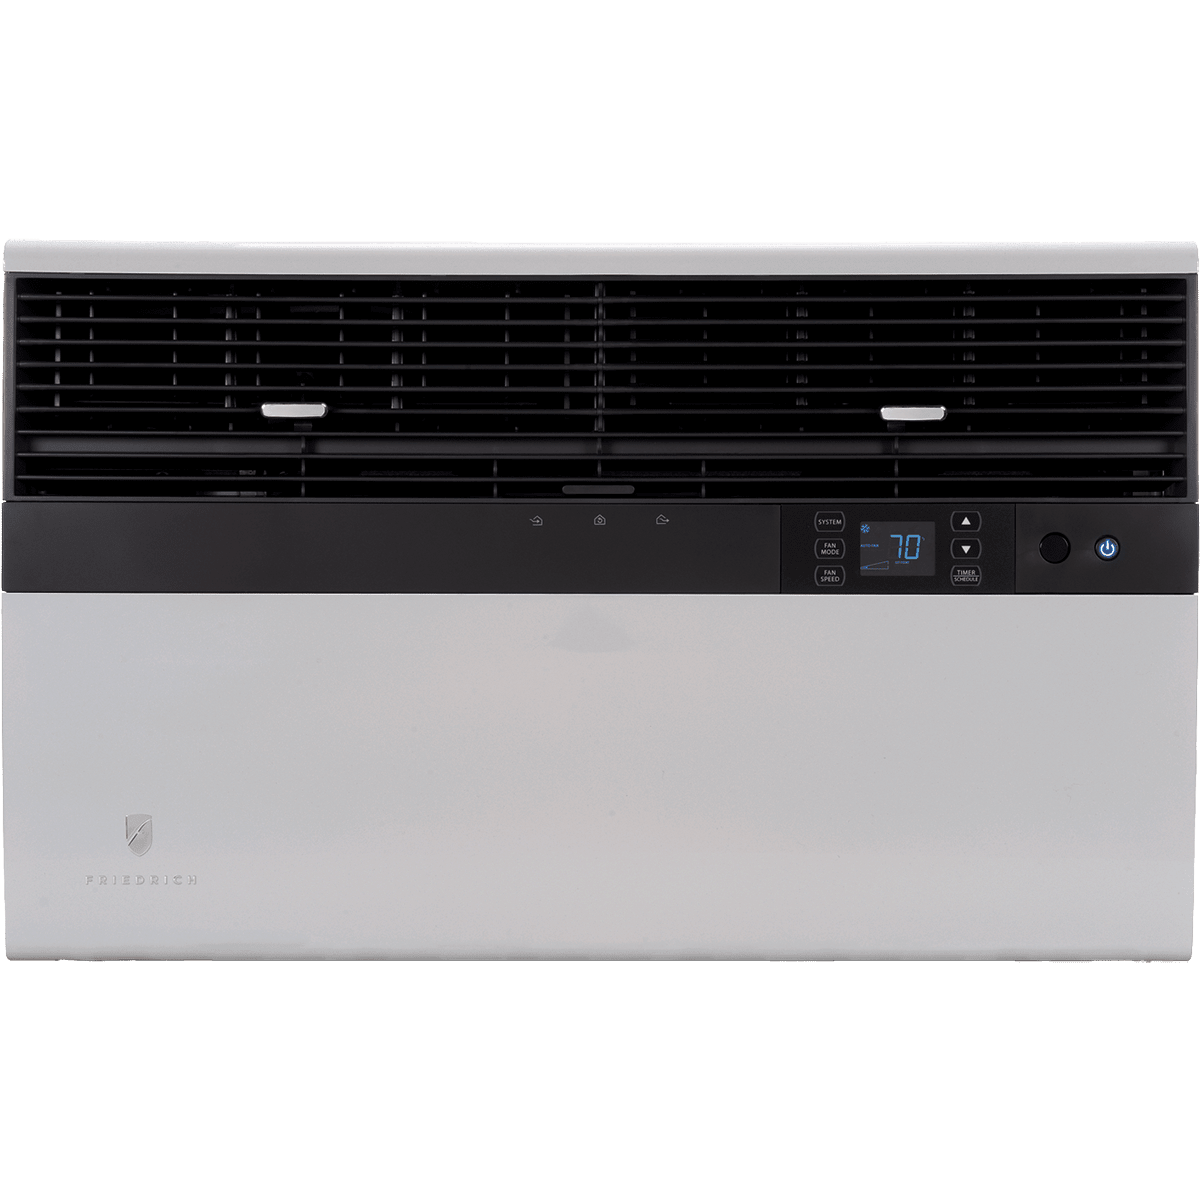 Friedrich Kuhl 13,500 BTU Window & Wall Air Conditioner (SS14N10C)